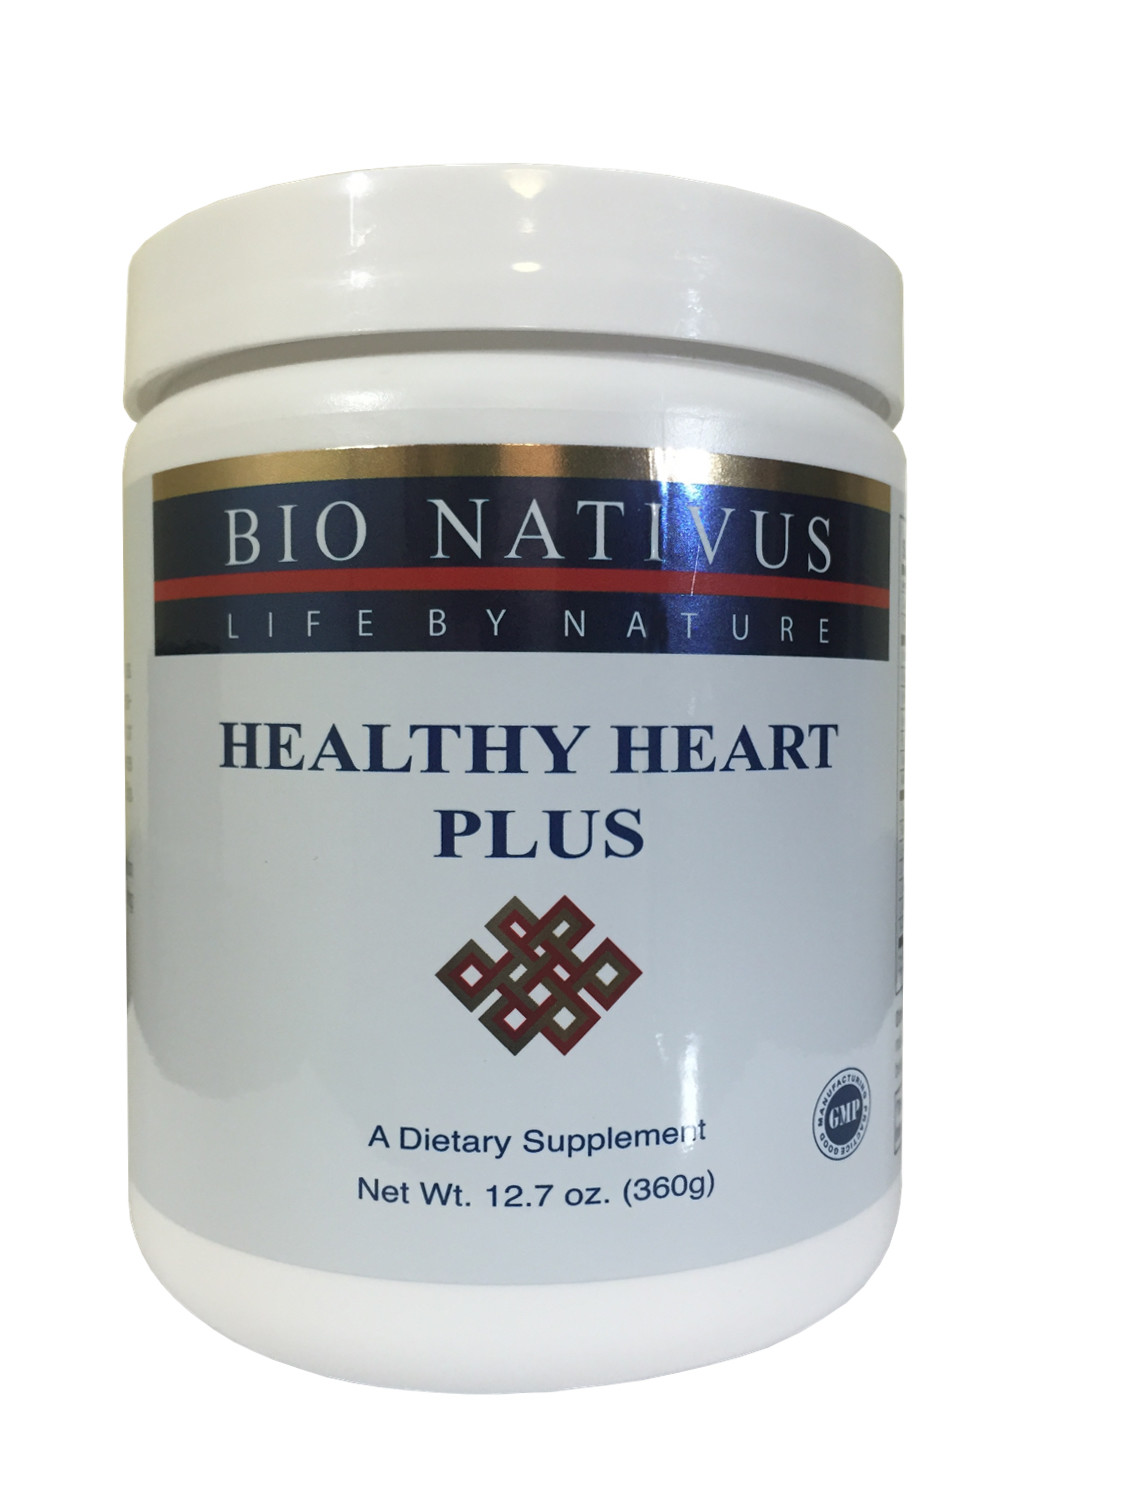 Healthy Heart Plus - NEW AND IMPROVED!